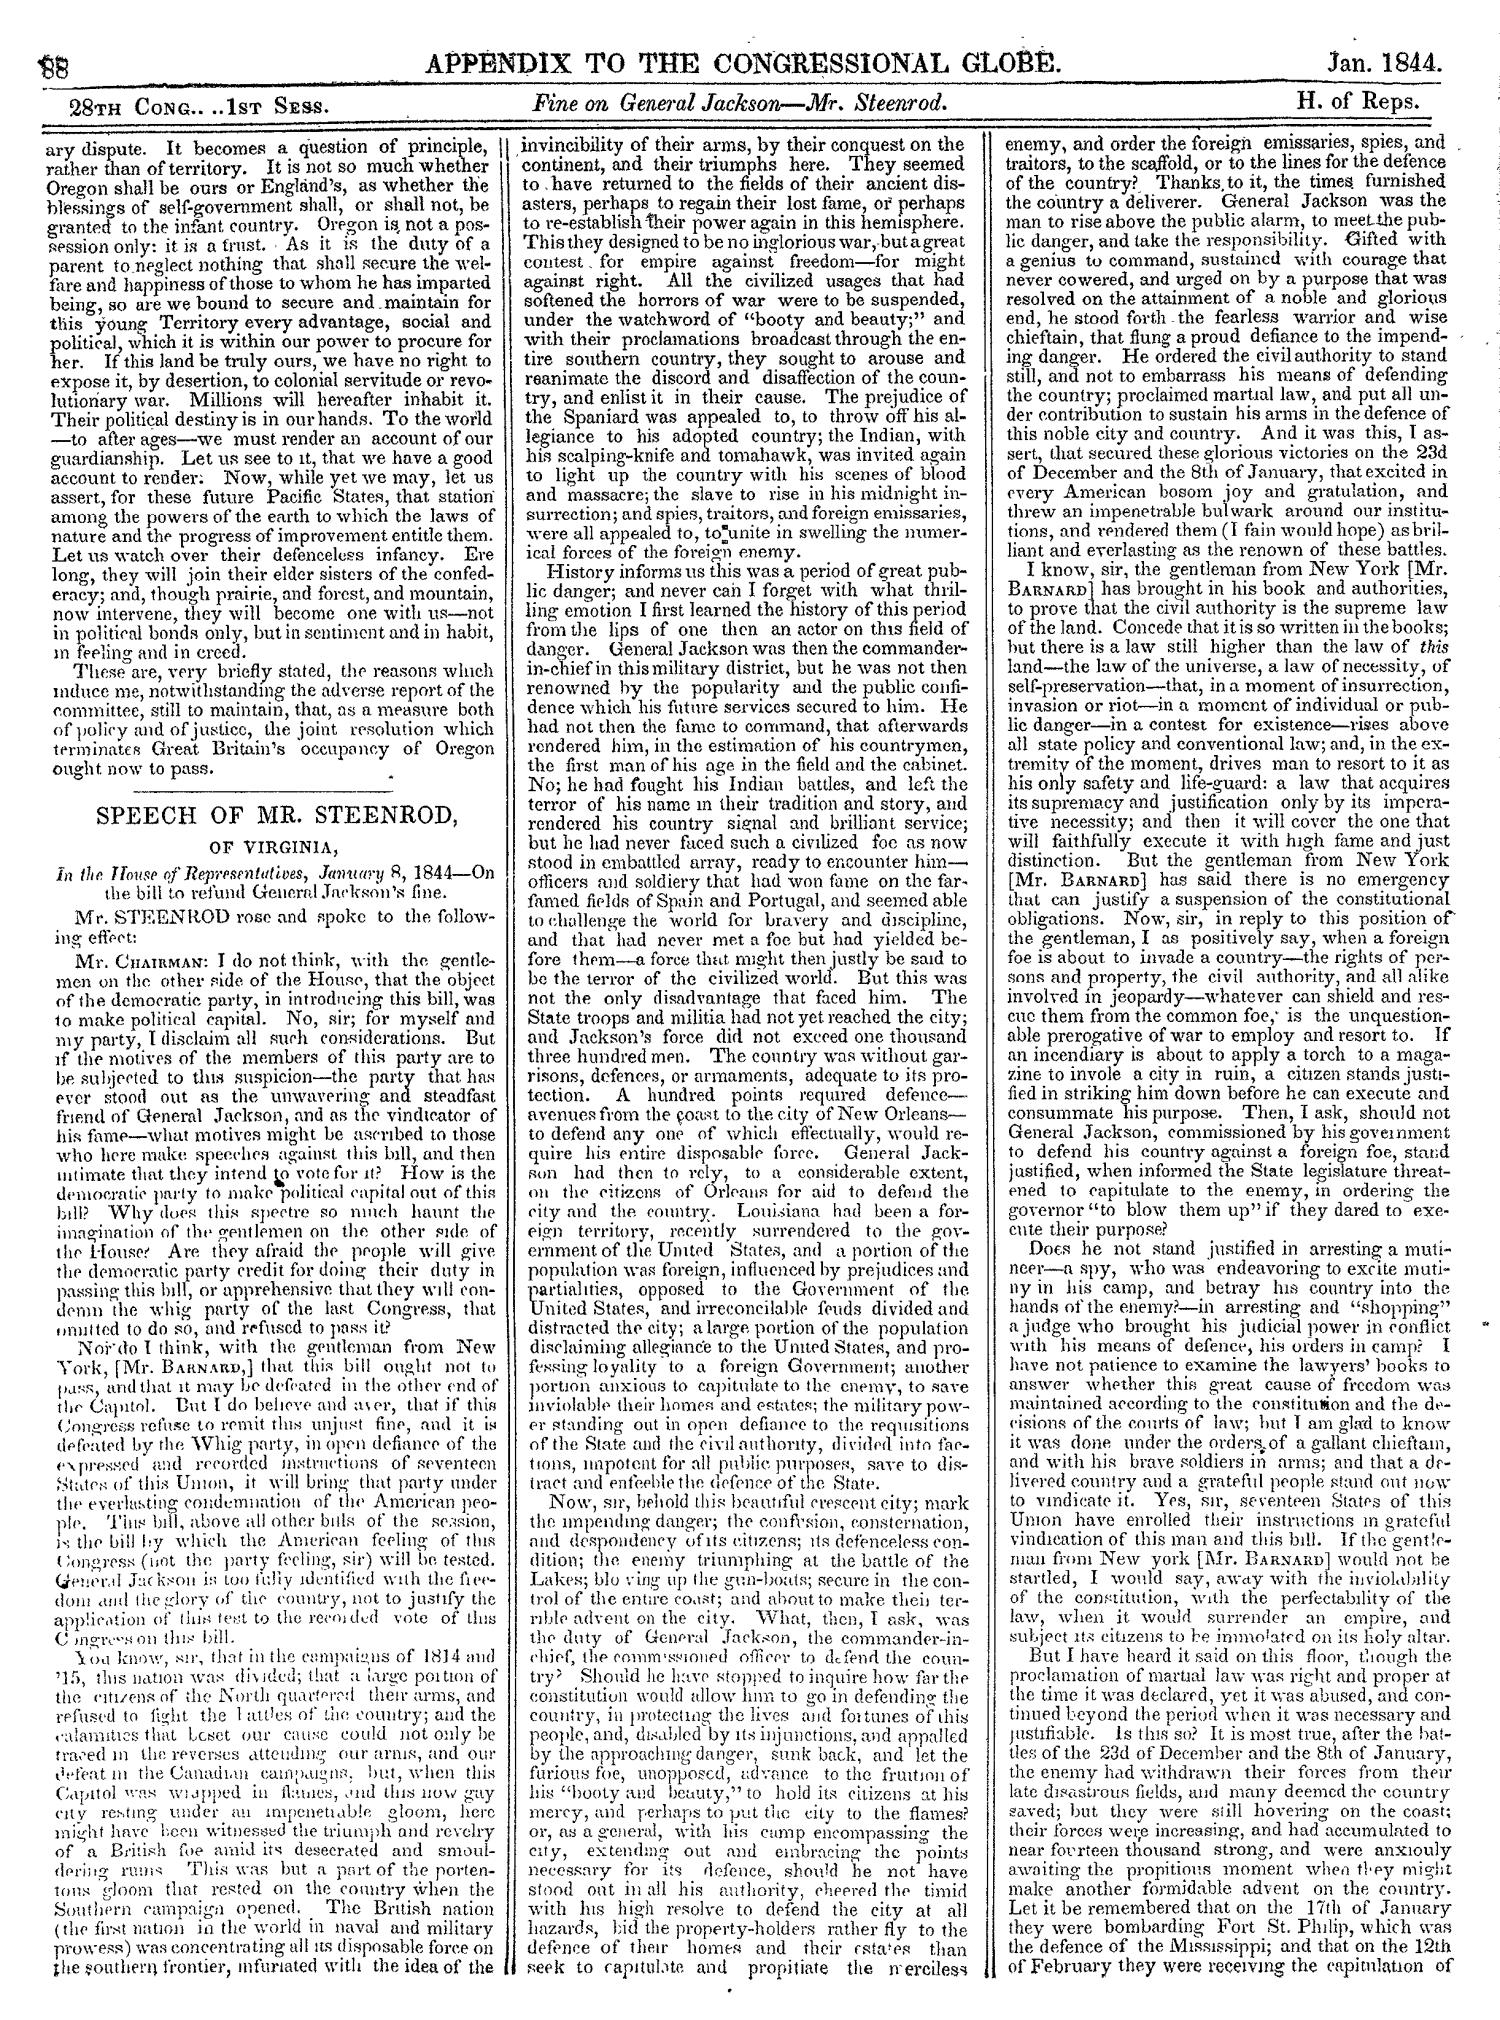 The Congressional Globe, Volume 13, Part 2: Twenty-Eighth Congress, First Session                                                                                                      88